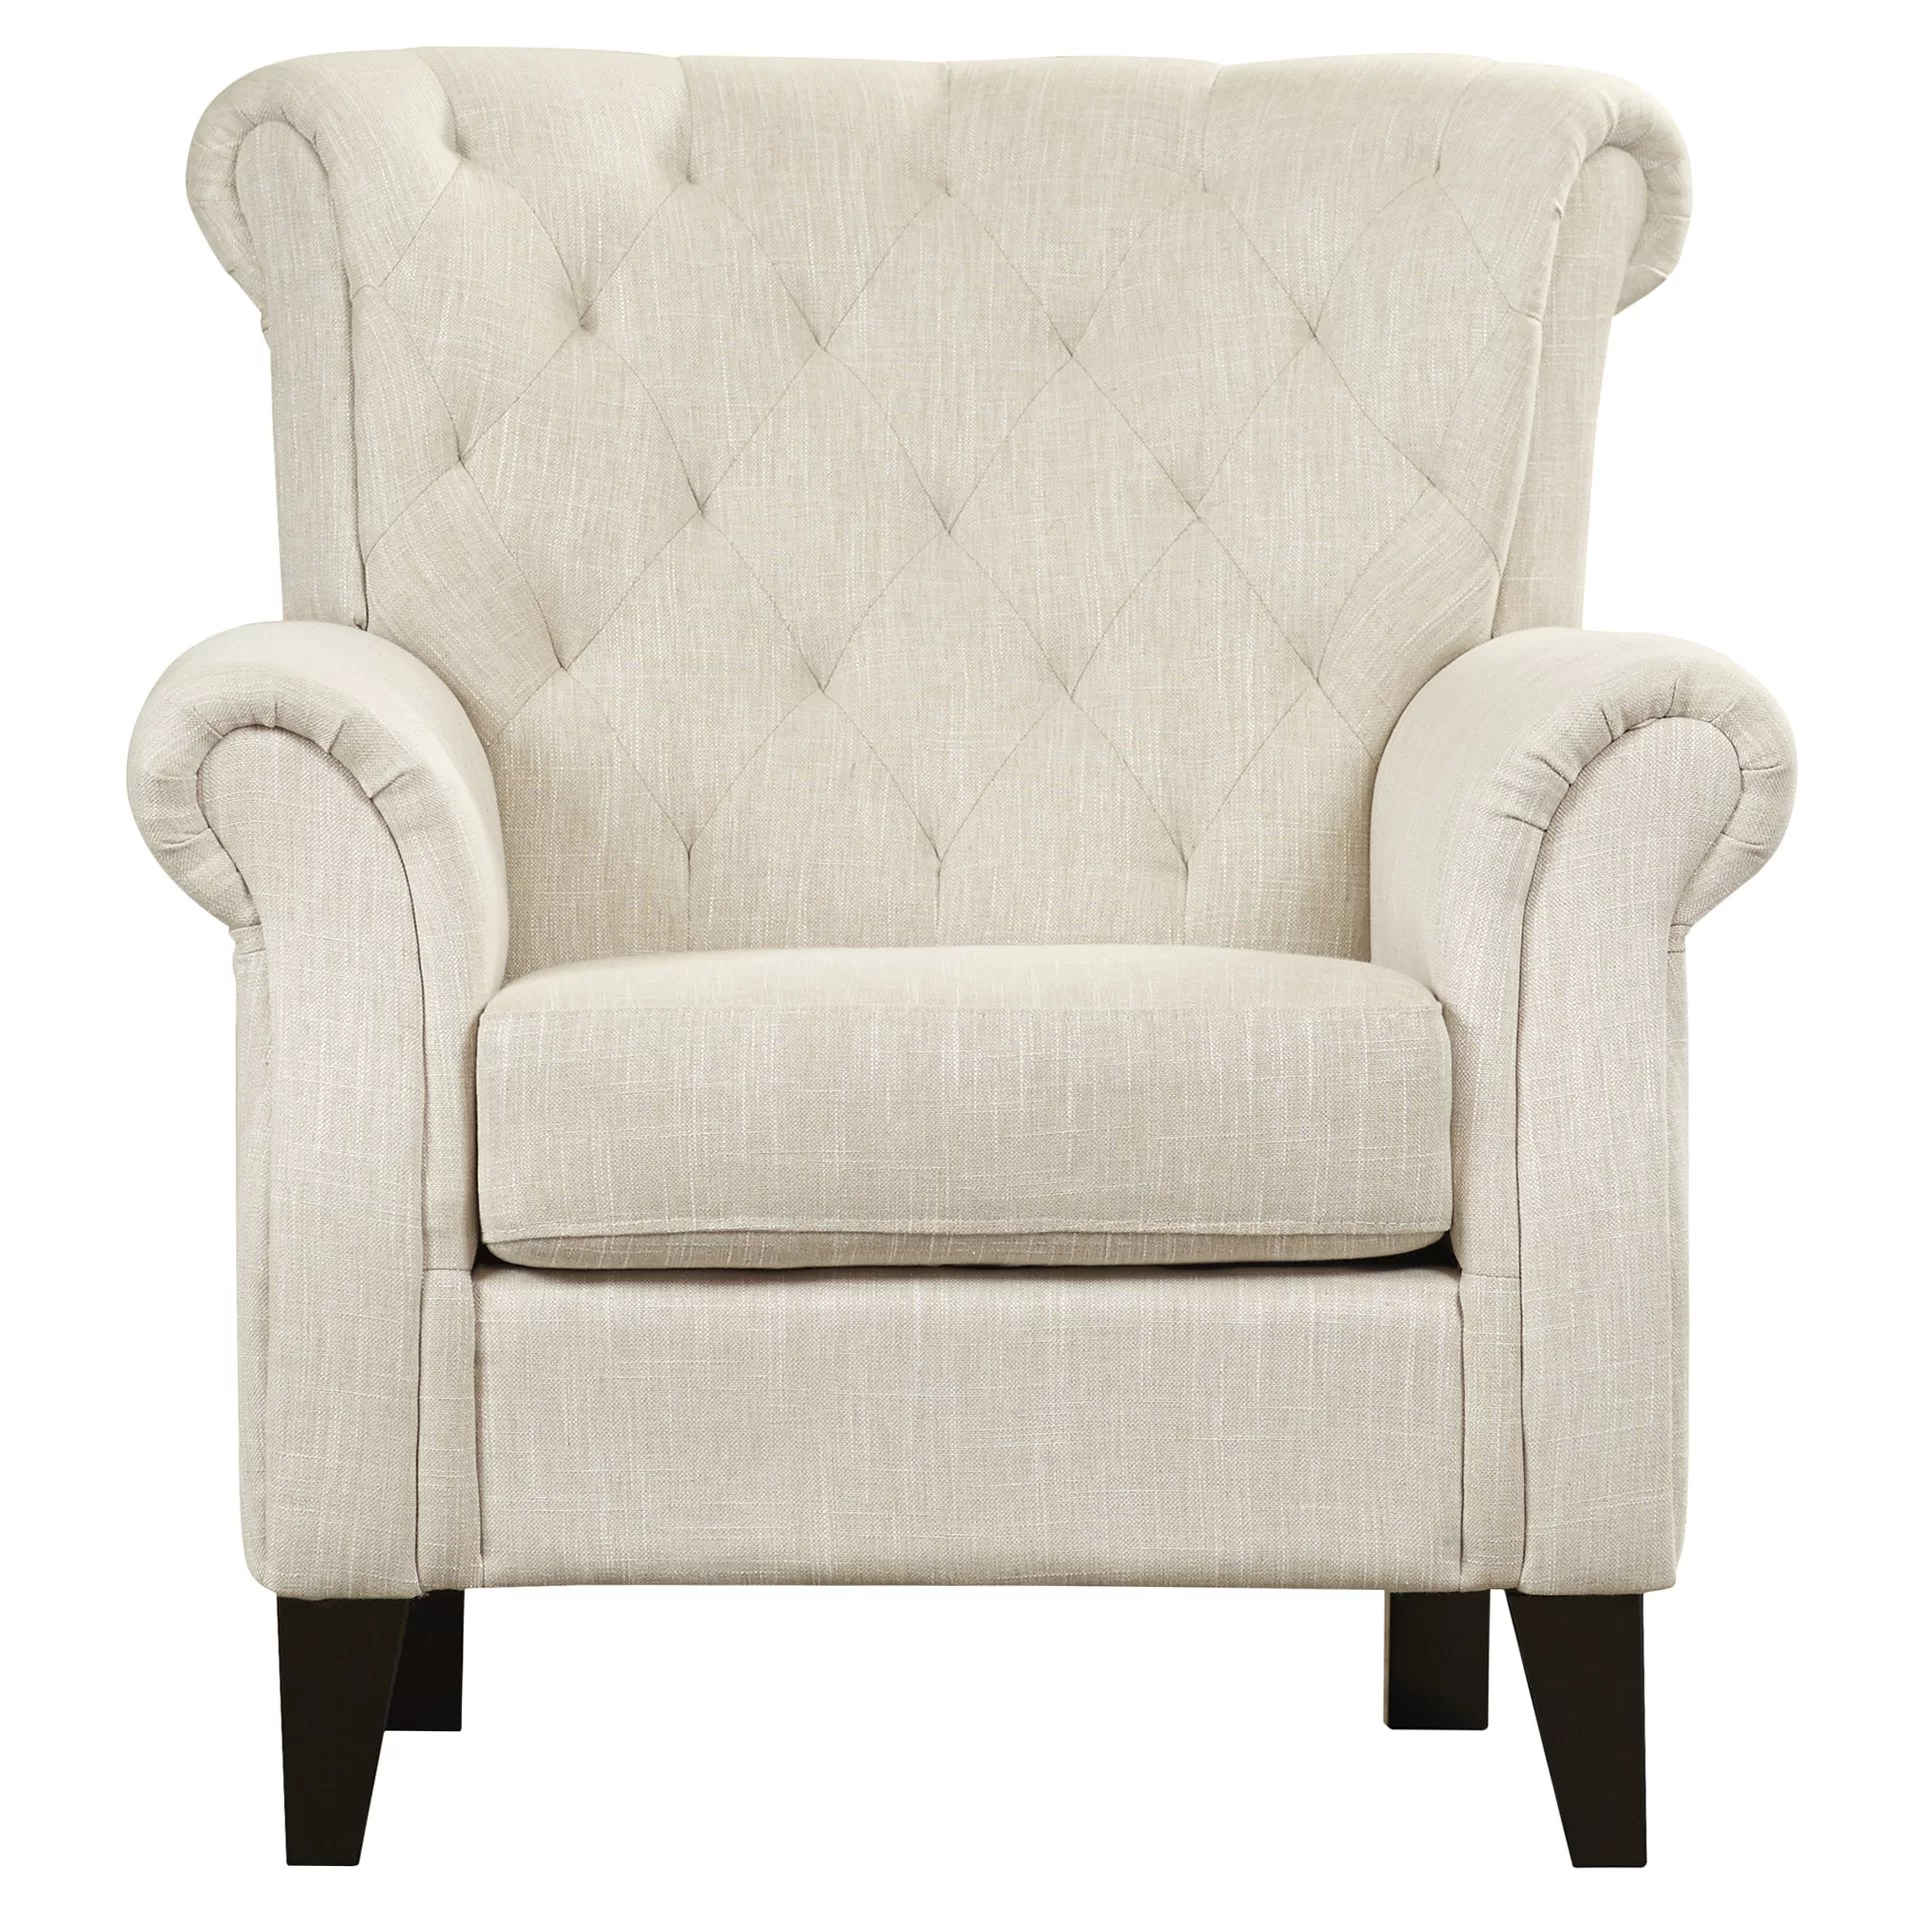 Armed Accent Chairs Alcott Hill Tufted Upholstered Arm Chair And Reviews Wayfair